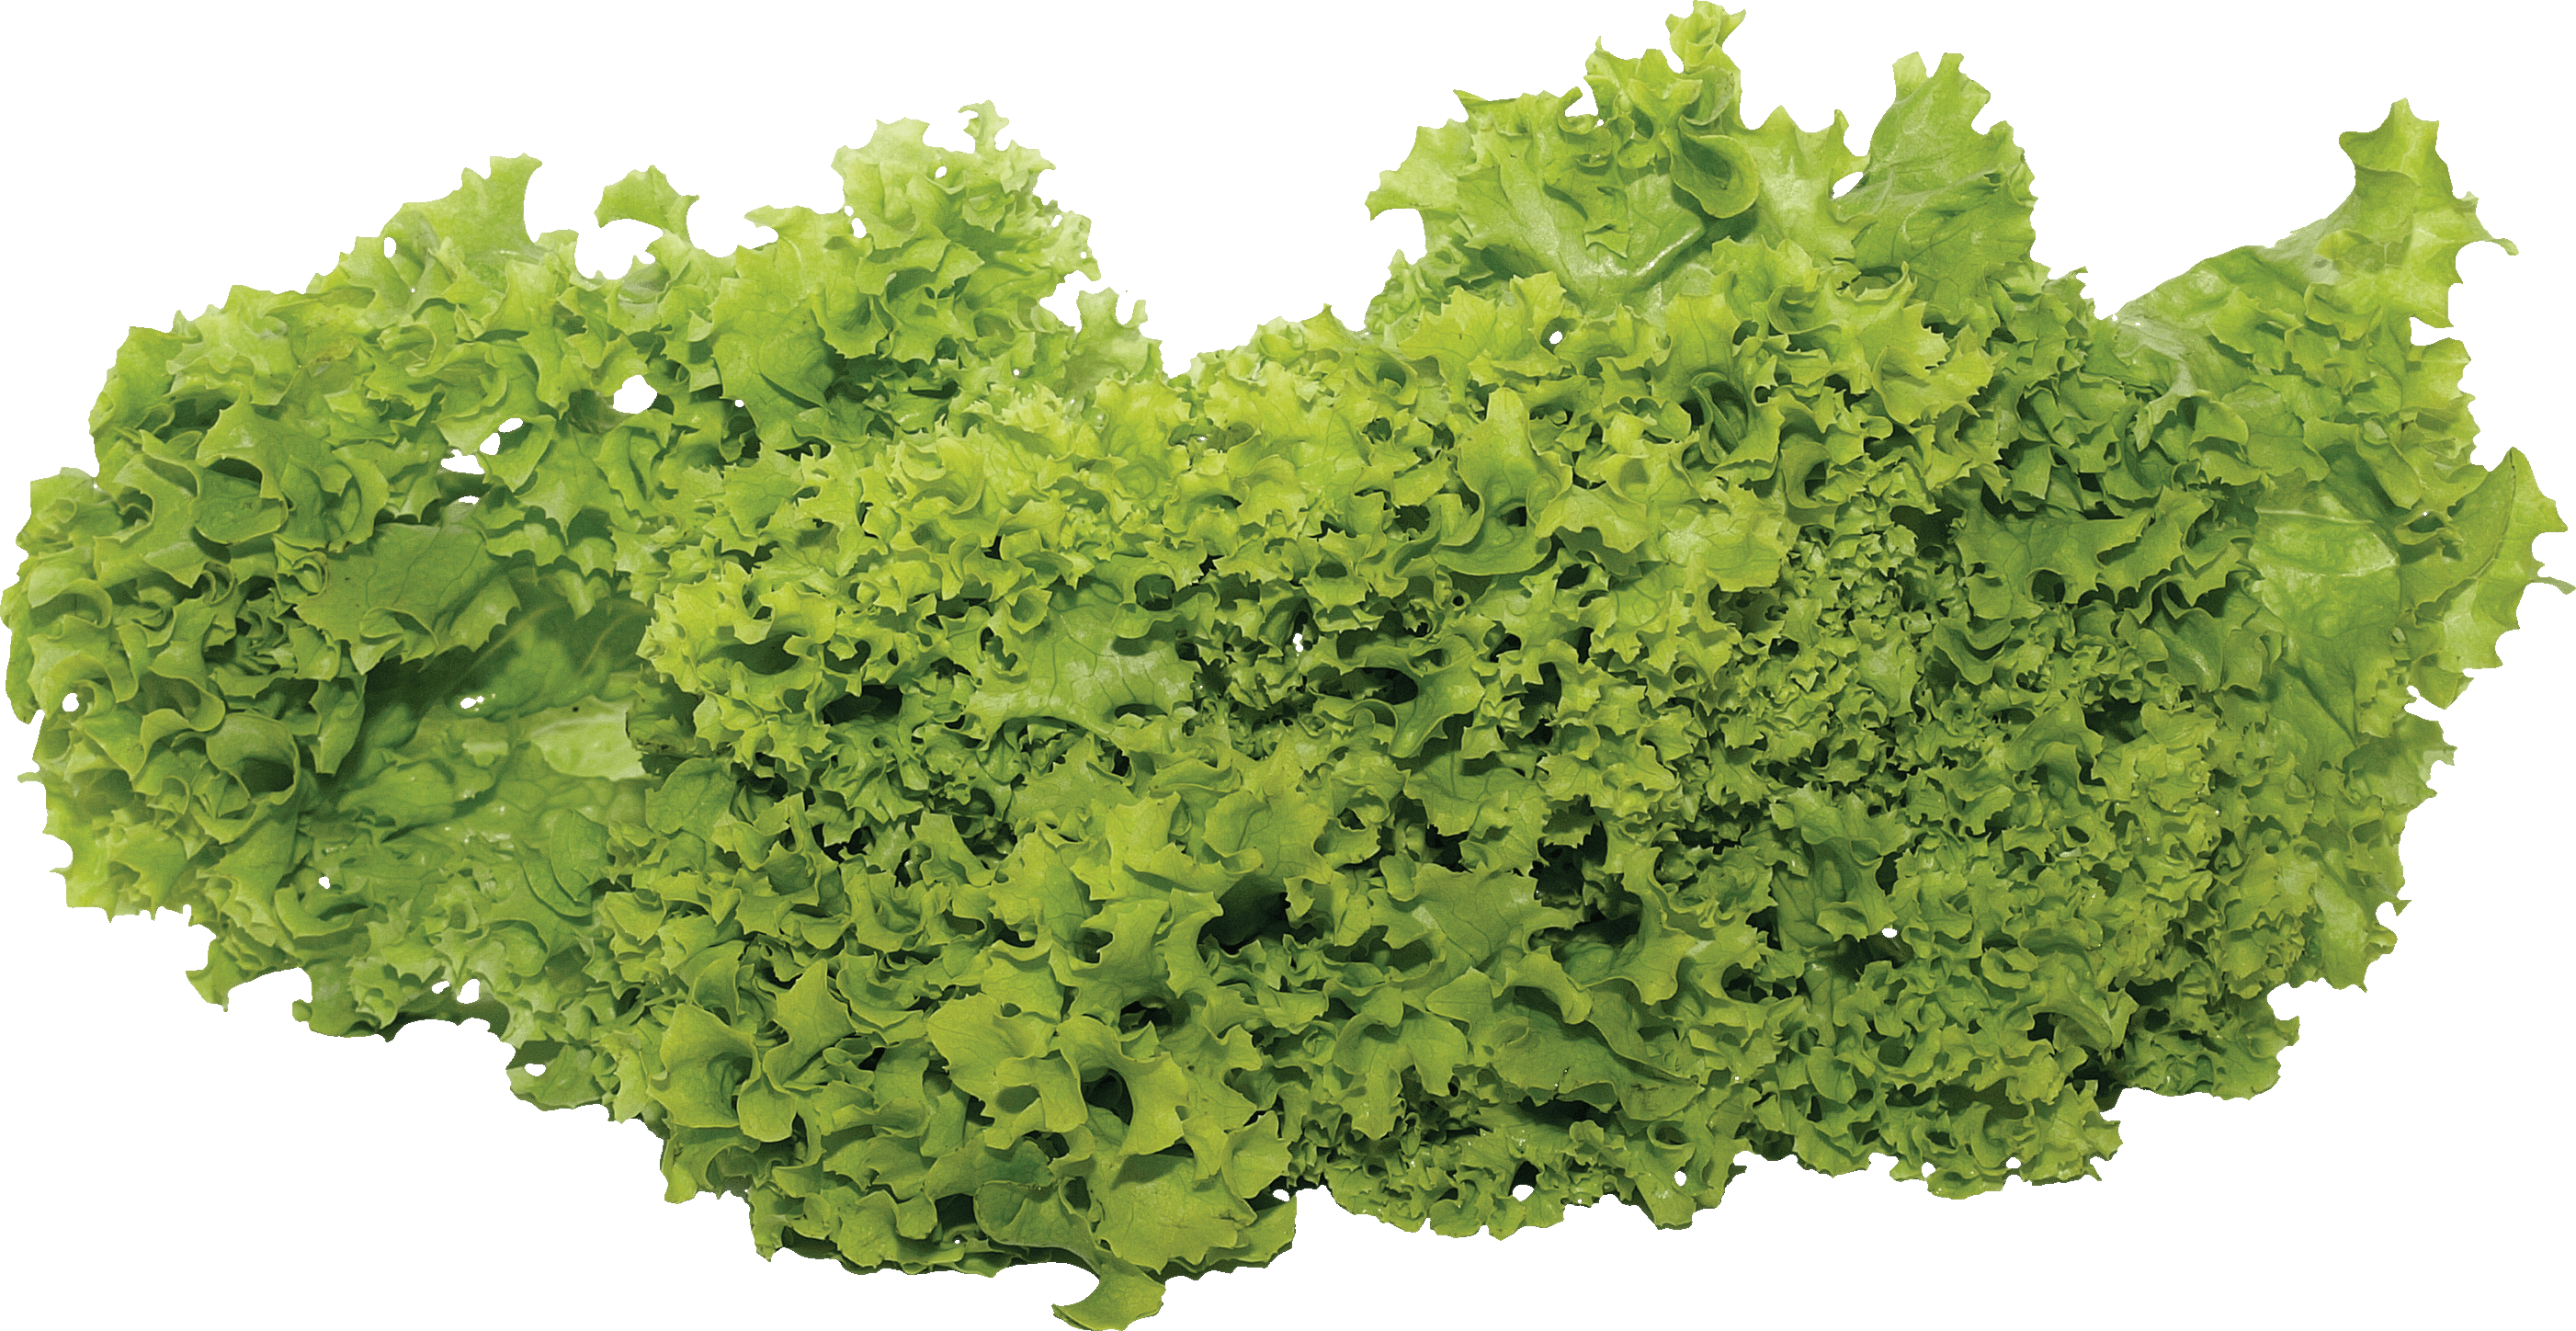 Flower Plant Top View Png Salad Png Image Purepng Free Transparent Cc0 Png Image